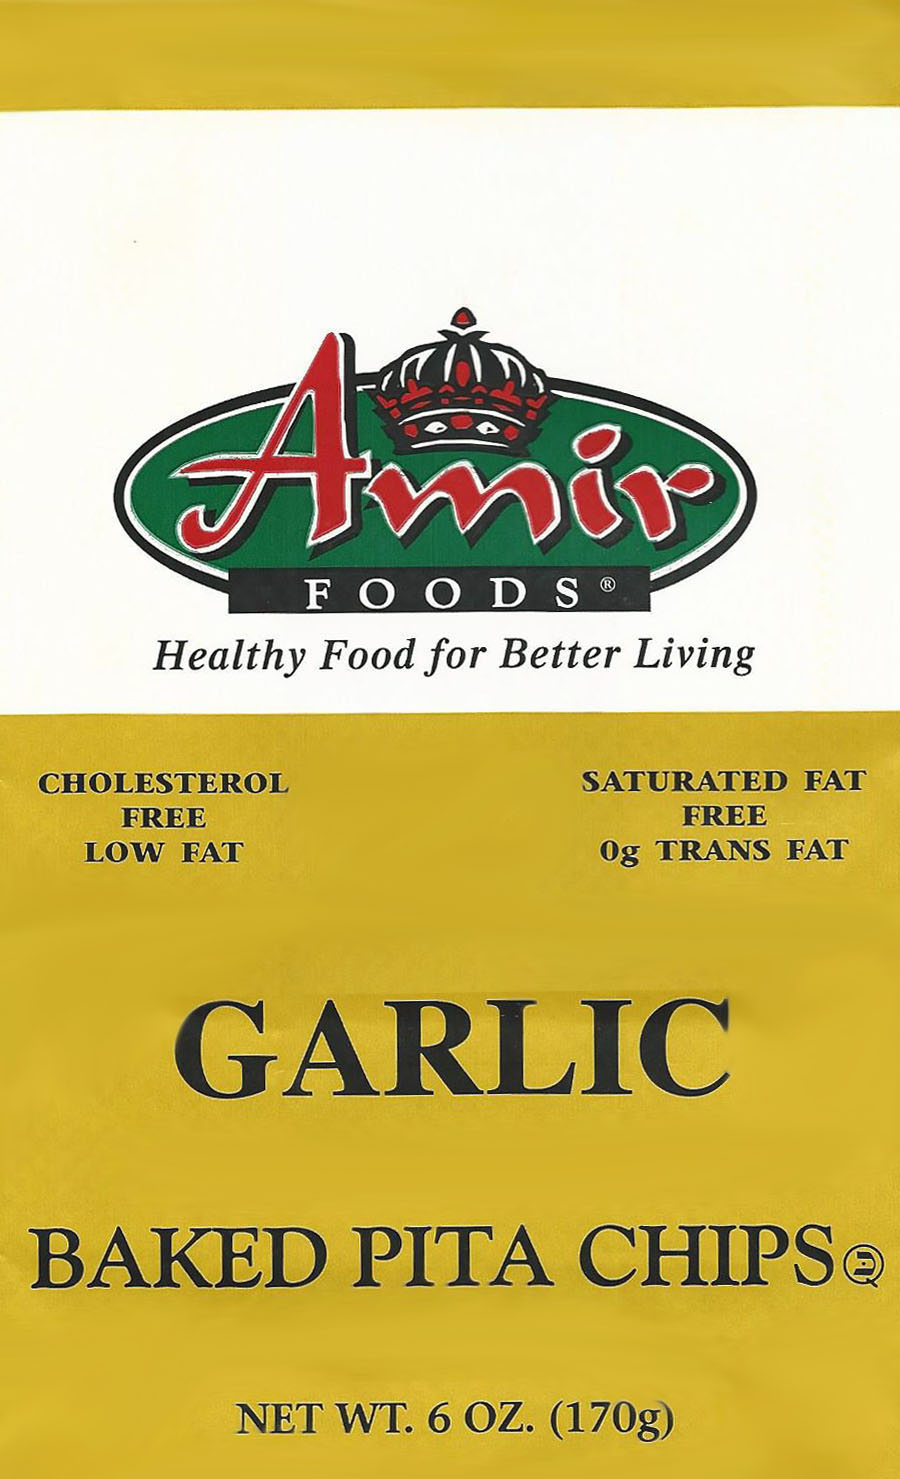 garlicchips.jpg